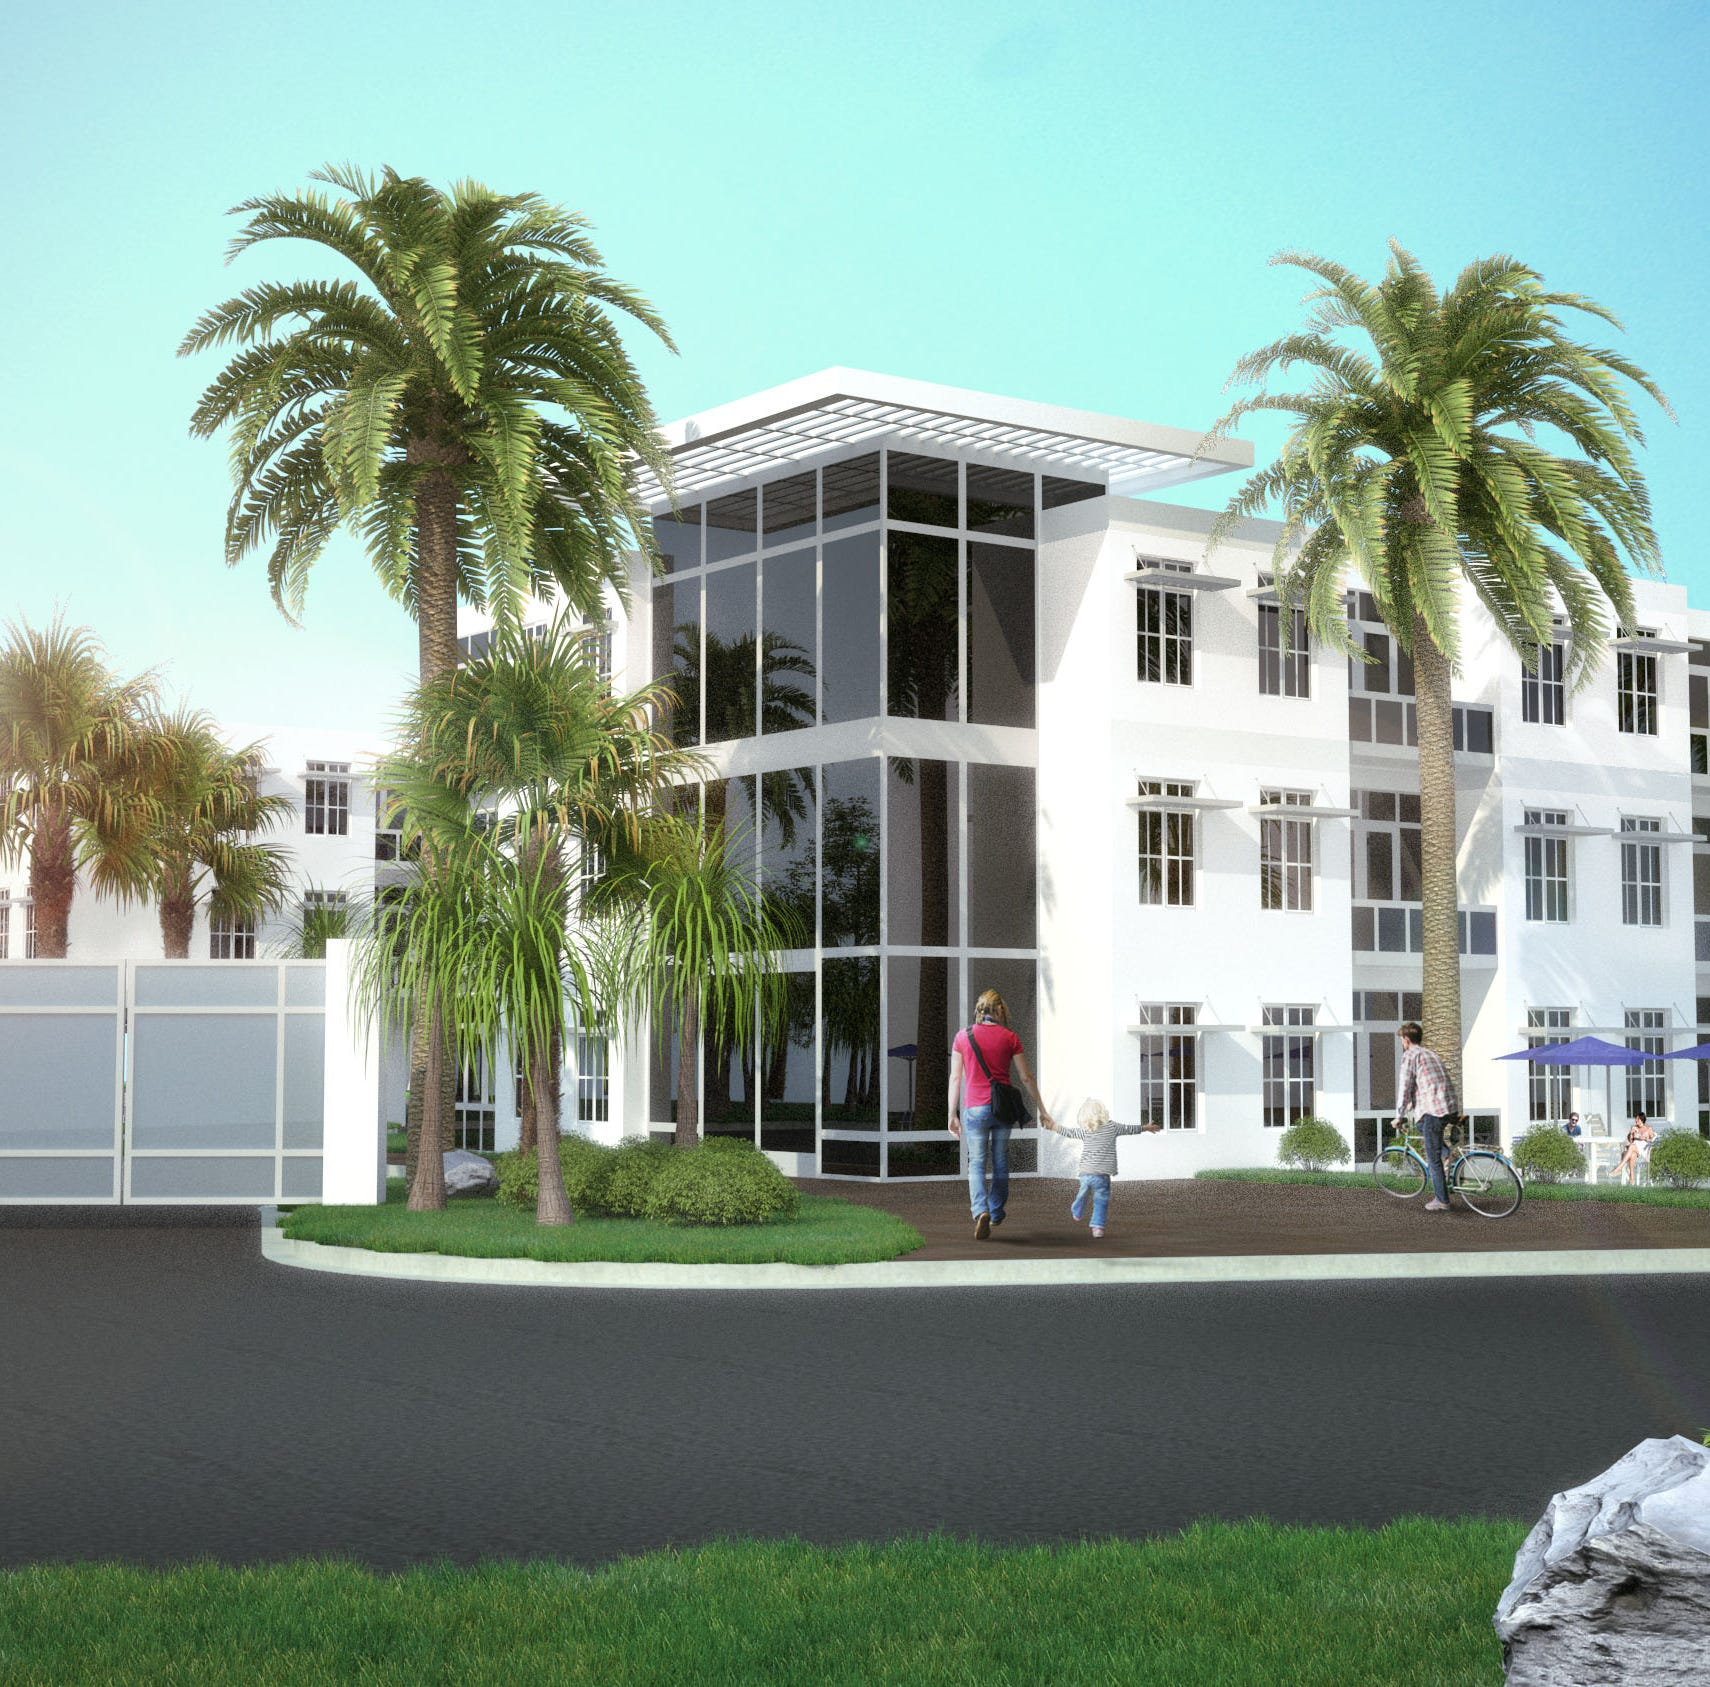 Holiday Inn Express proposed for controversial Gulf Breeze parcel